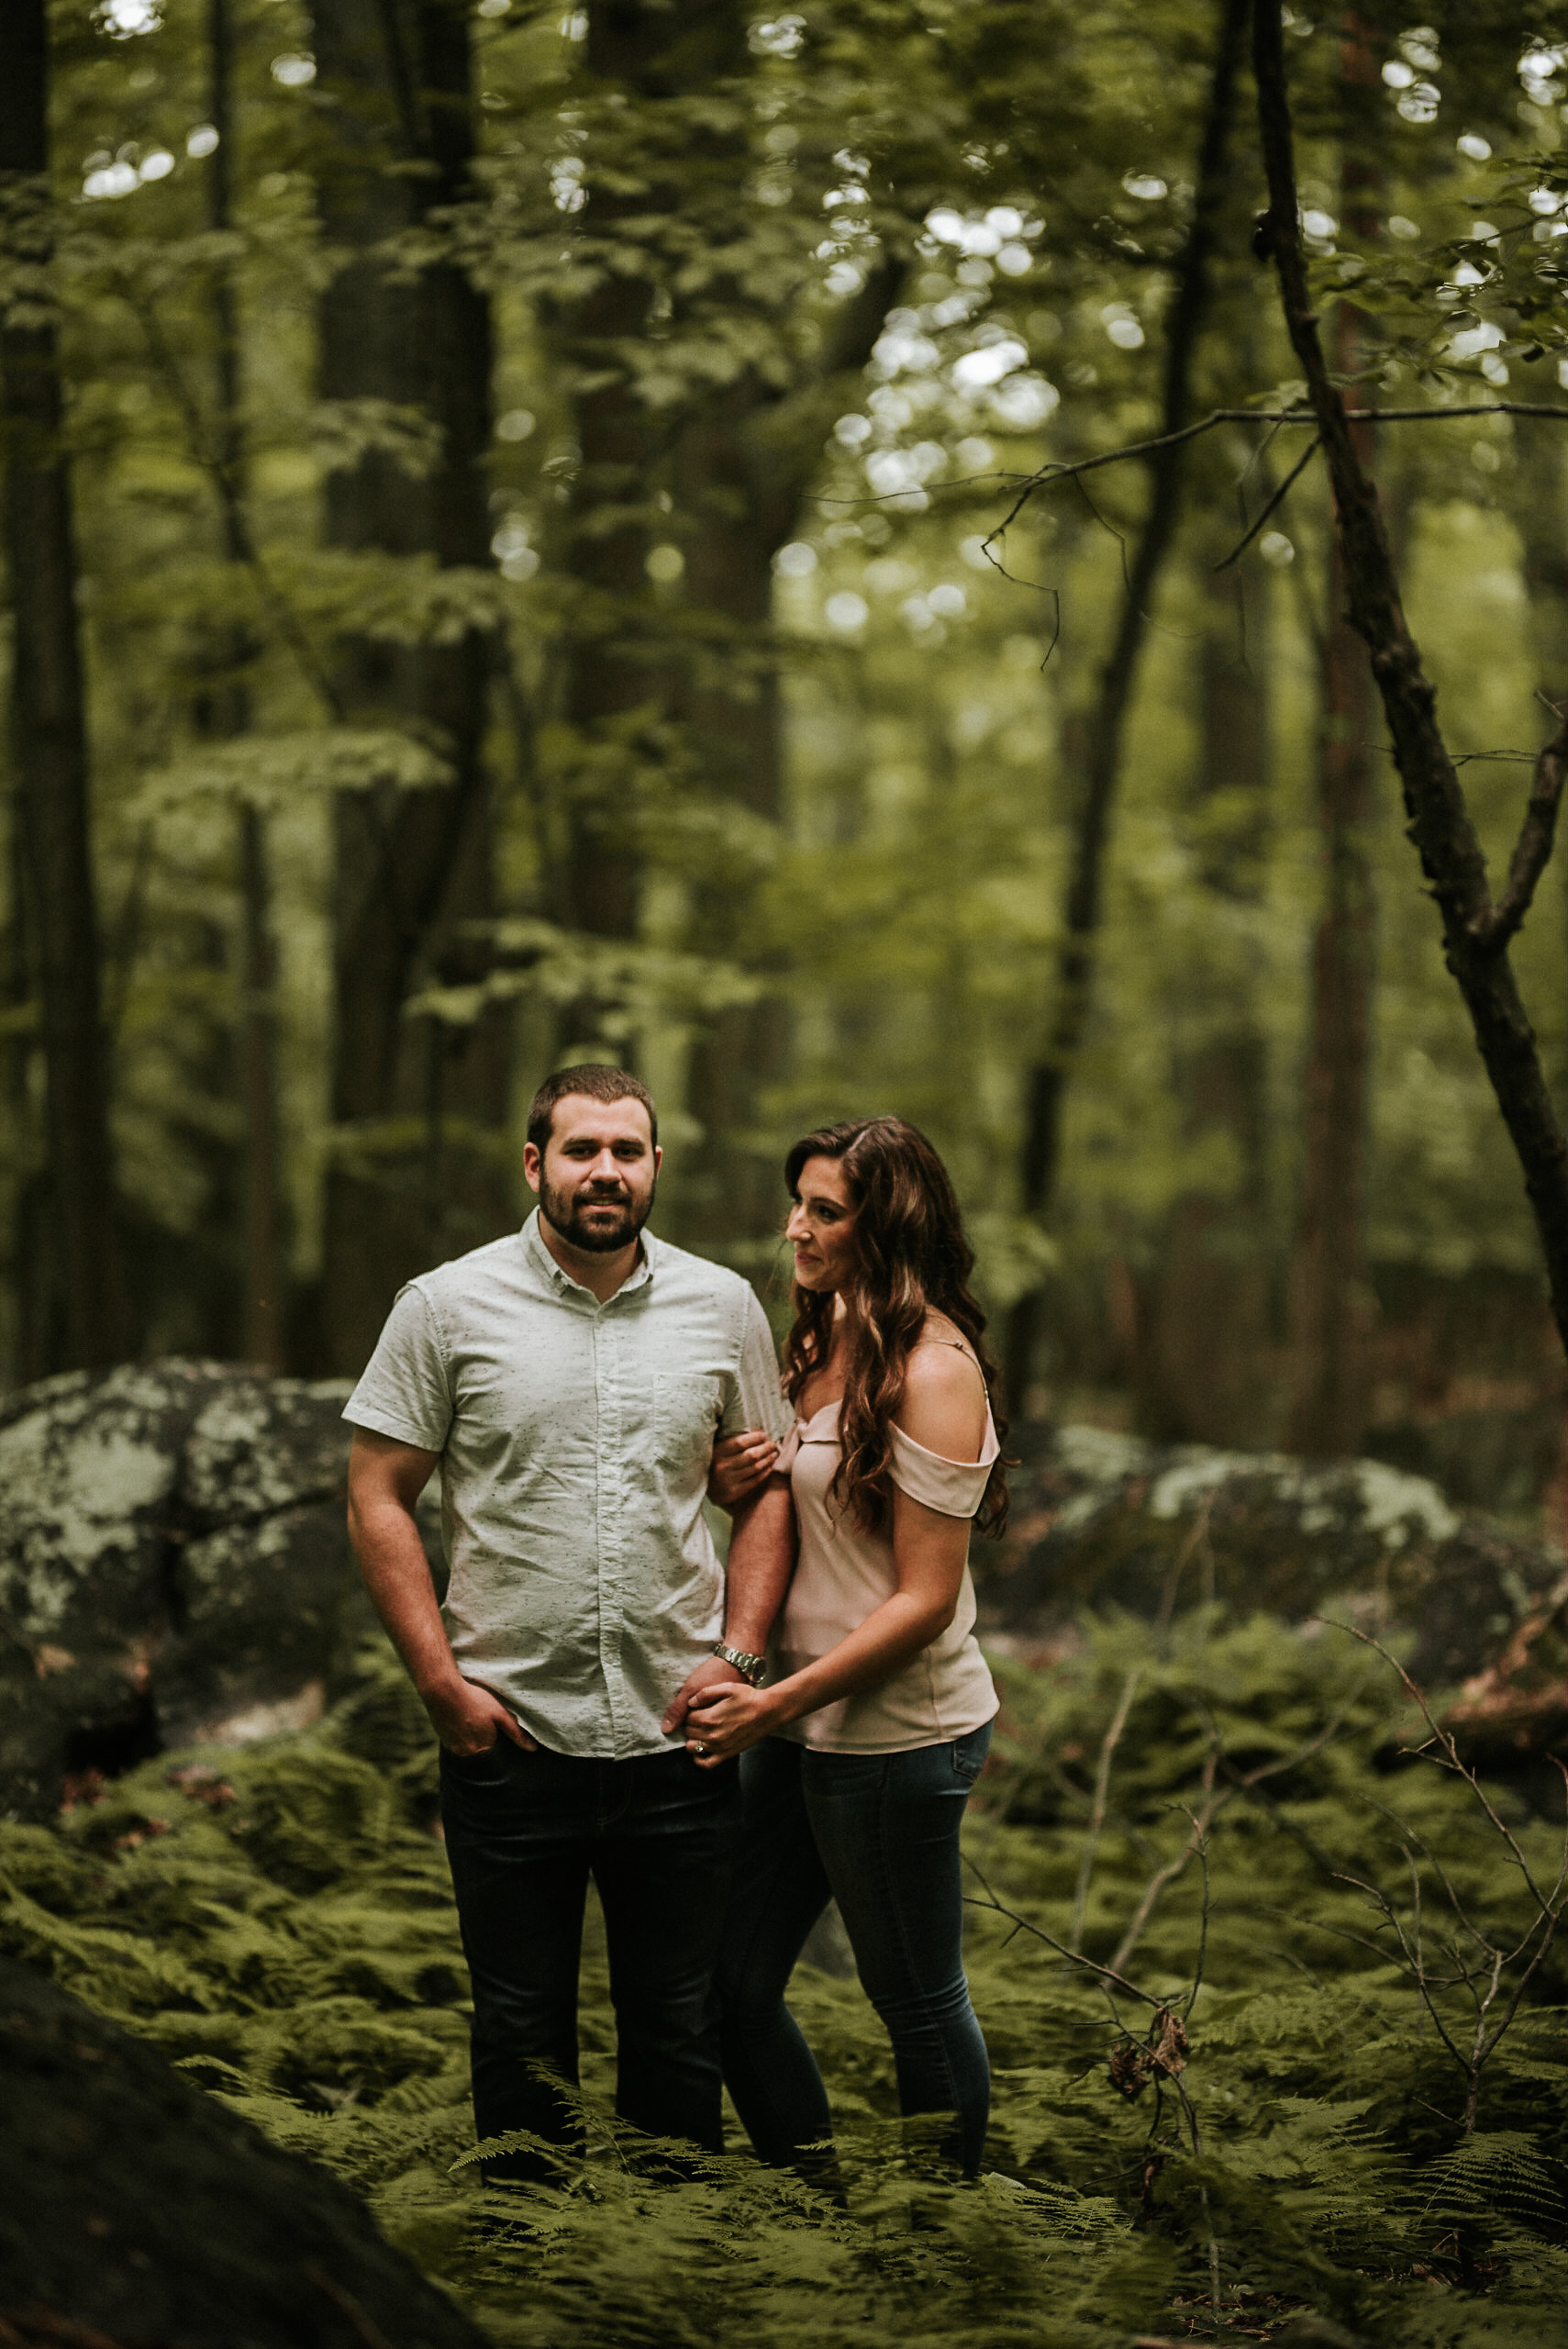 Man and woman in lush forest